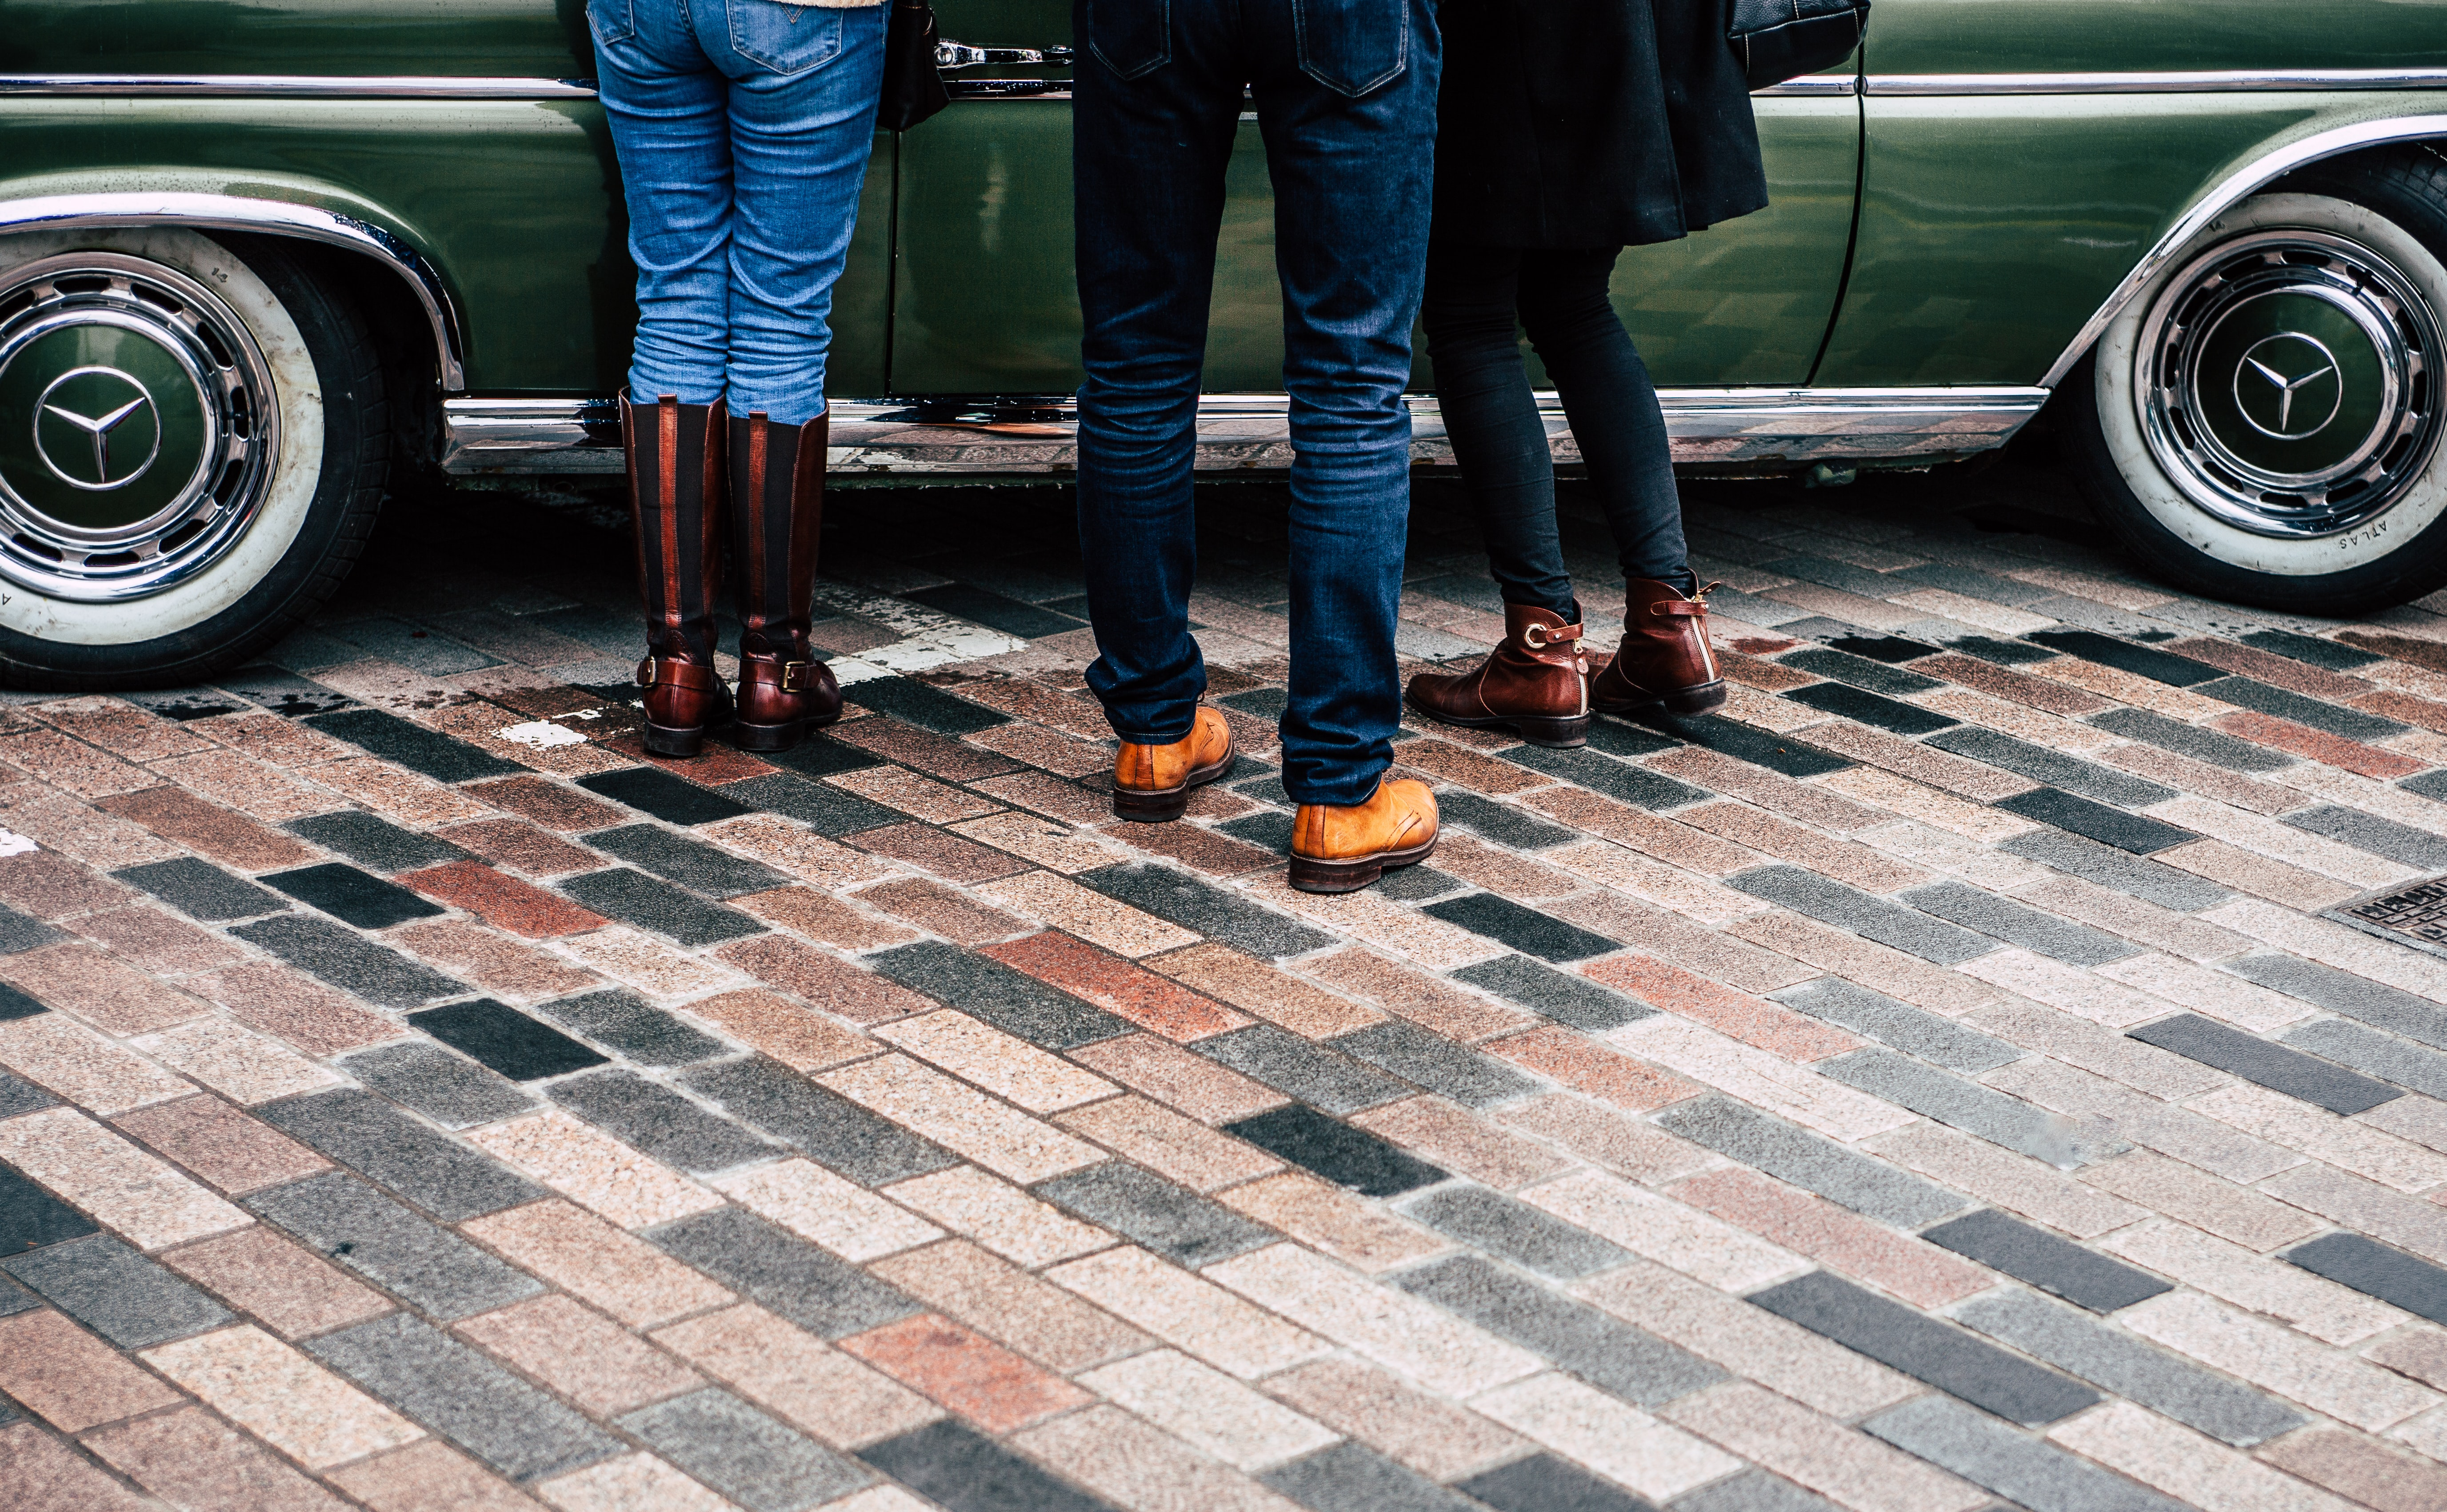 People standing on a brick road in front of a vintage Mercedes Benz car at Lewis Cubitt Park